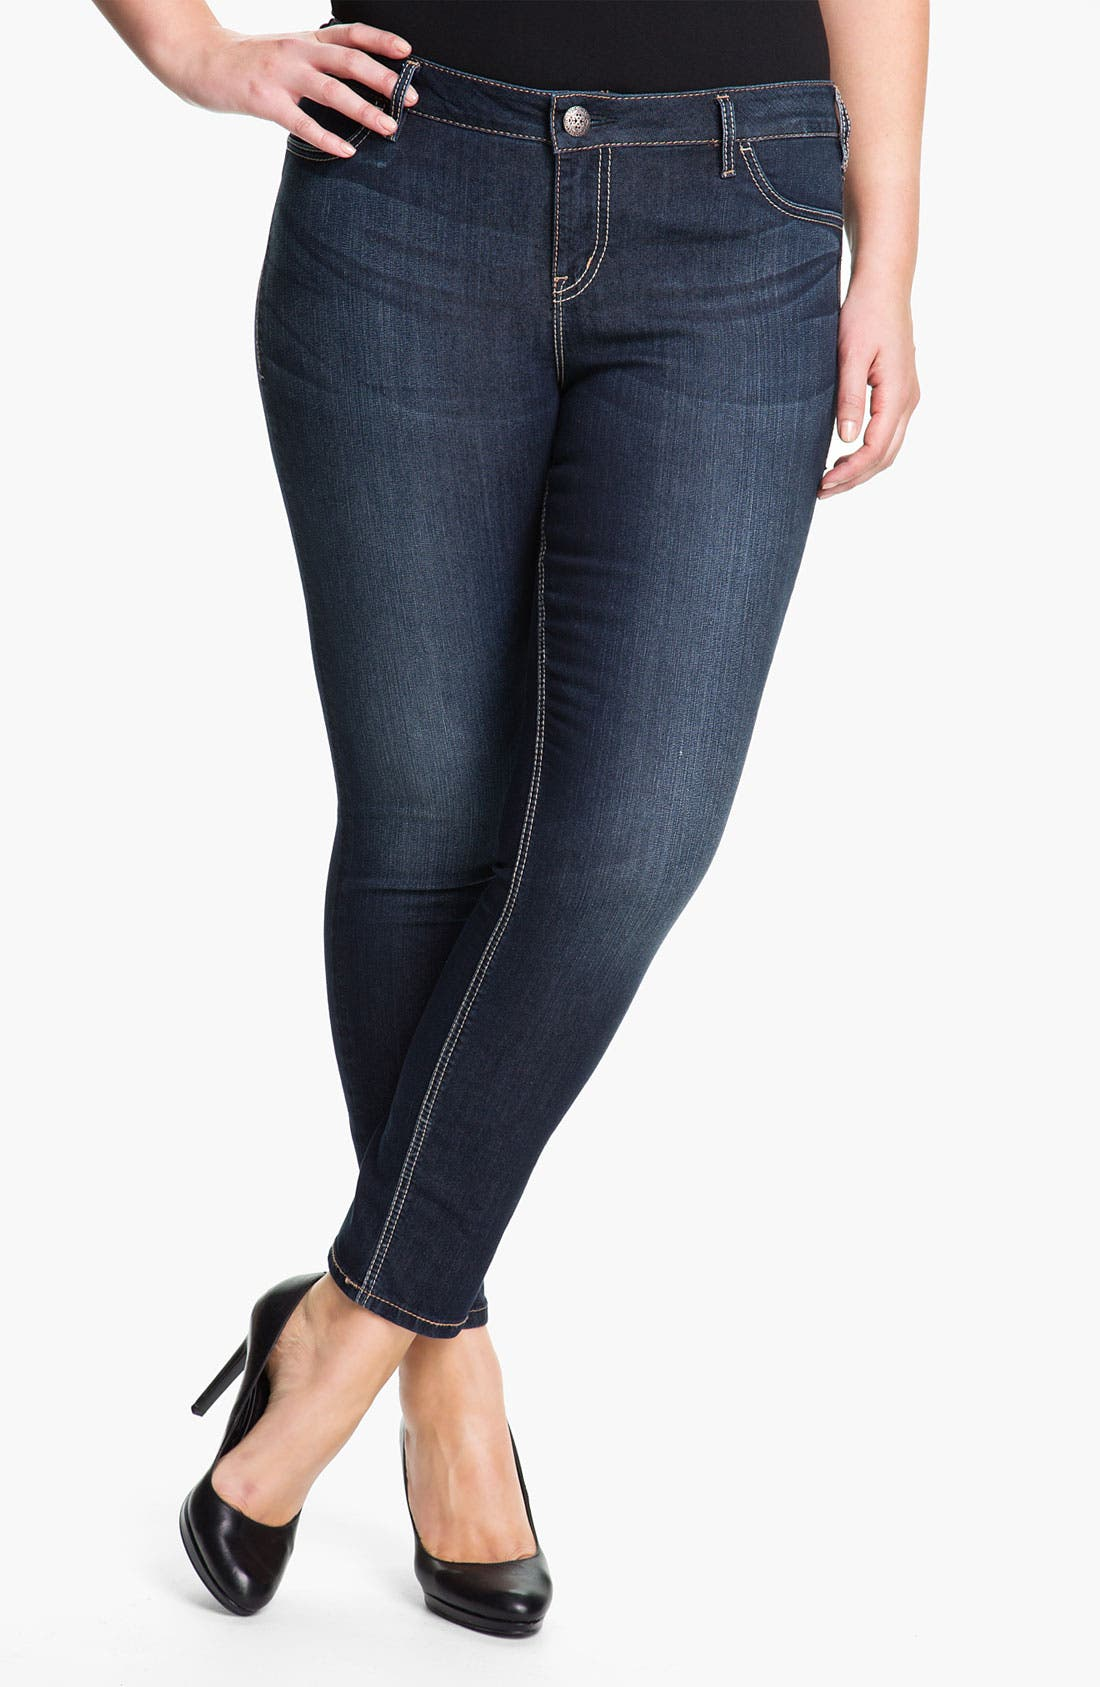 Alternate Image 1 Selected - Silver Jeans Co. 'Suki' Stretch Denim Leggings (Plus)